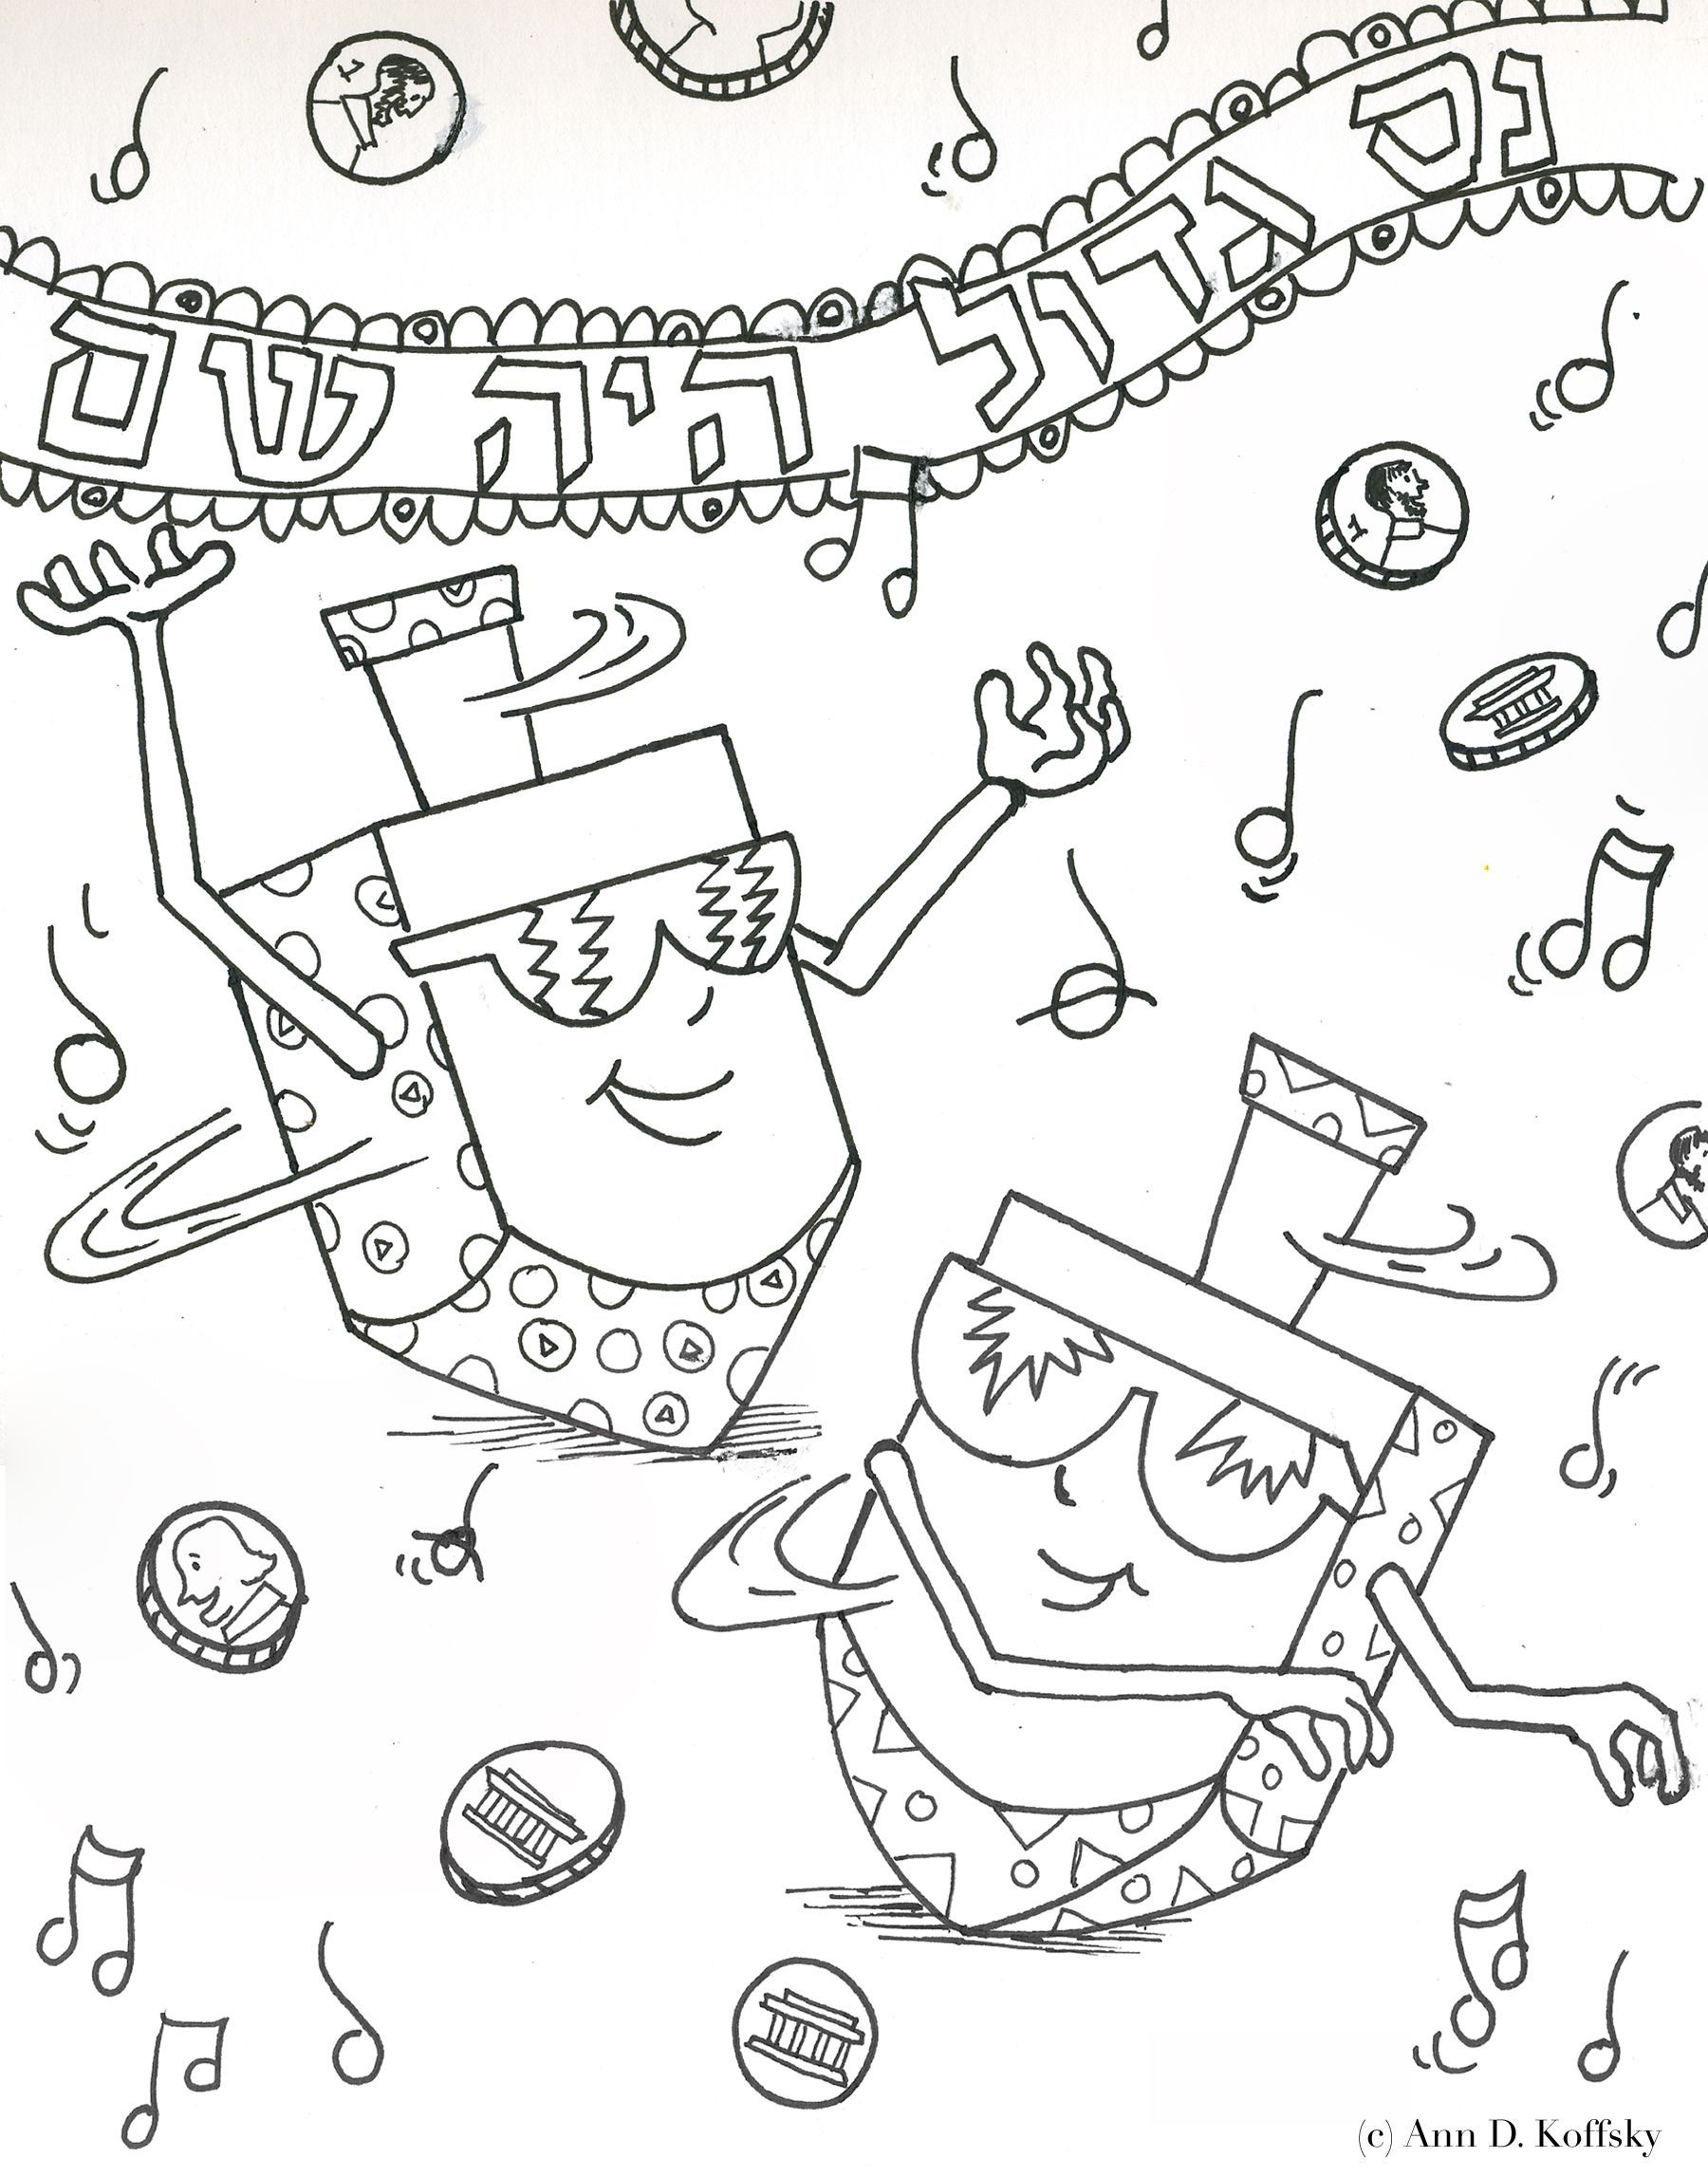 hanukkah symbols coloring pages - photo#36